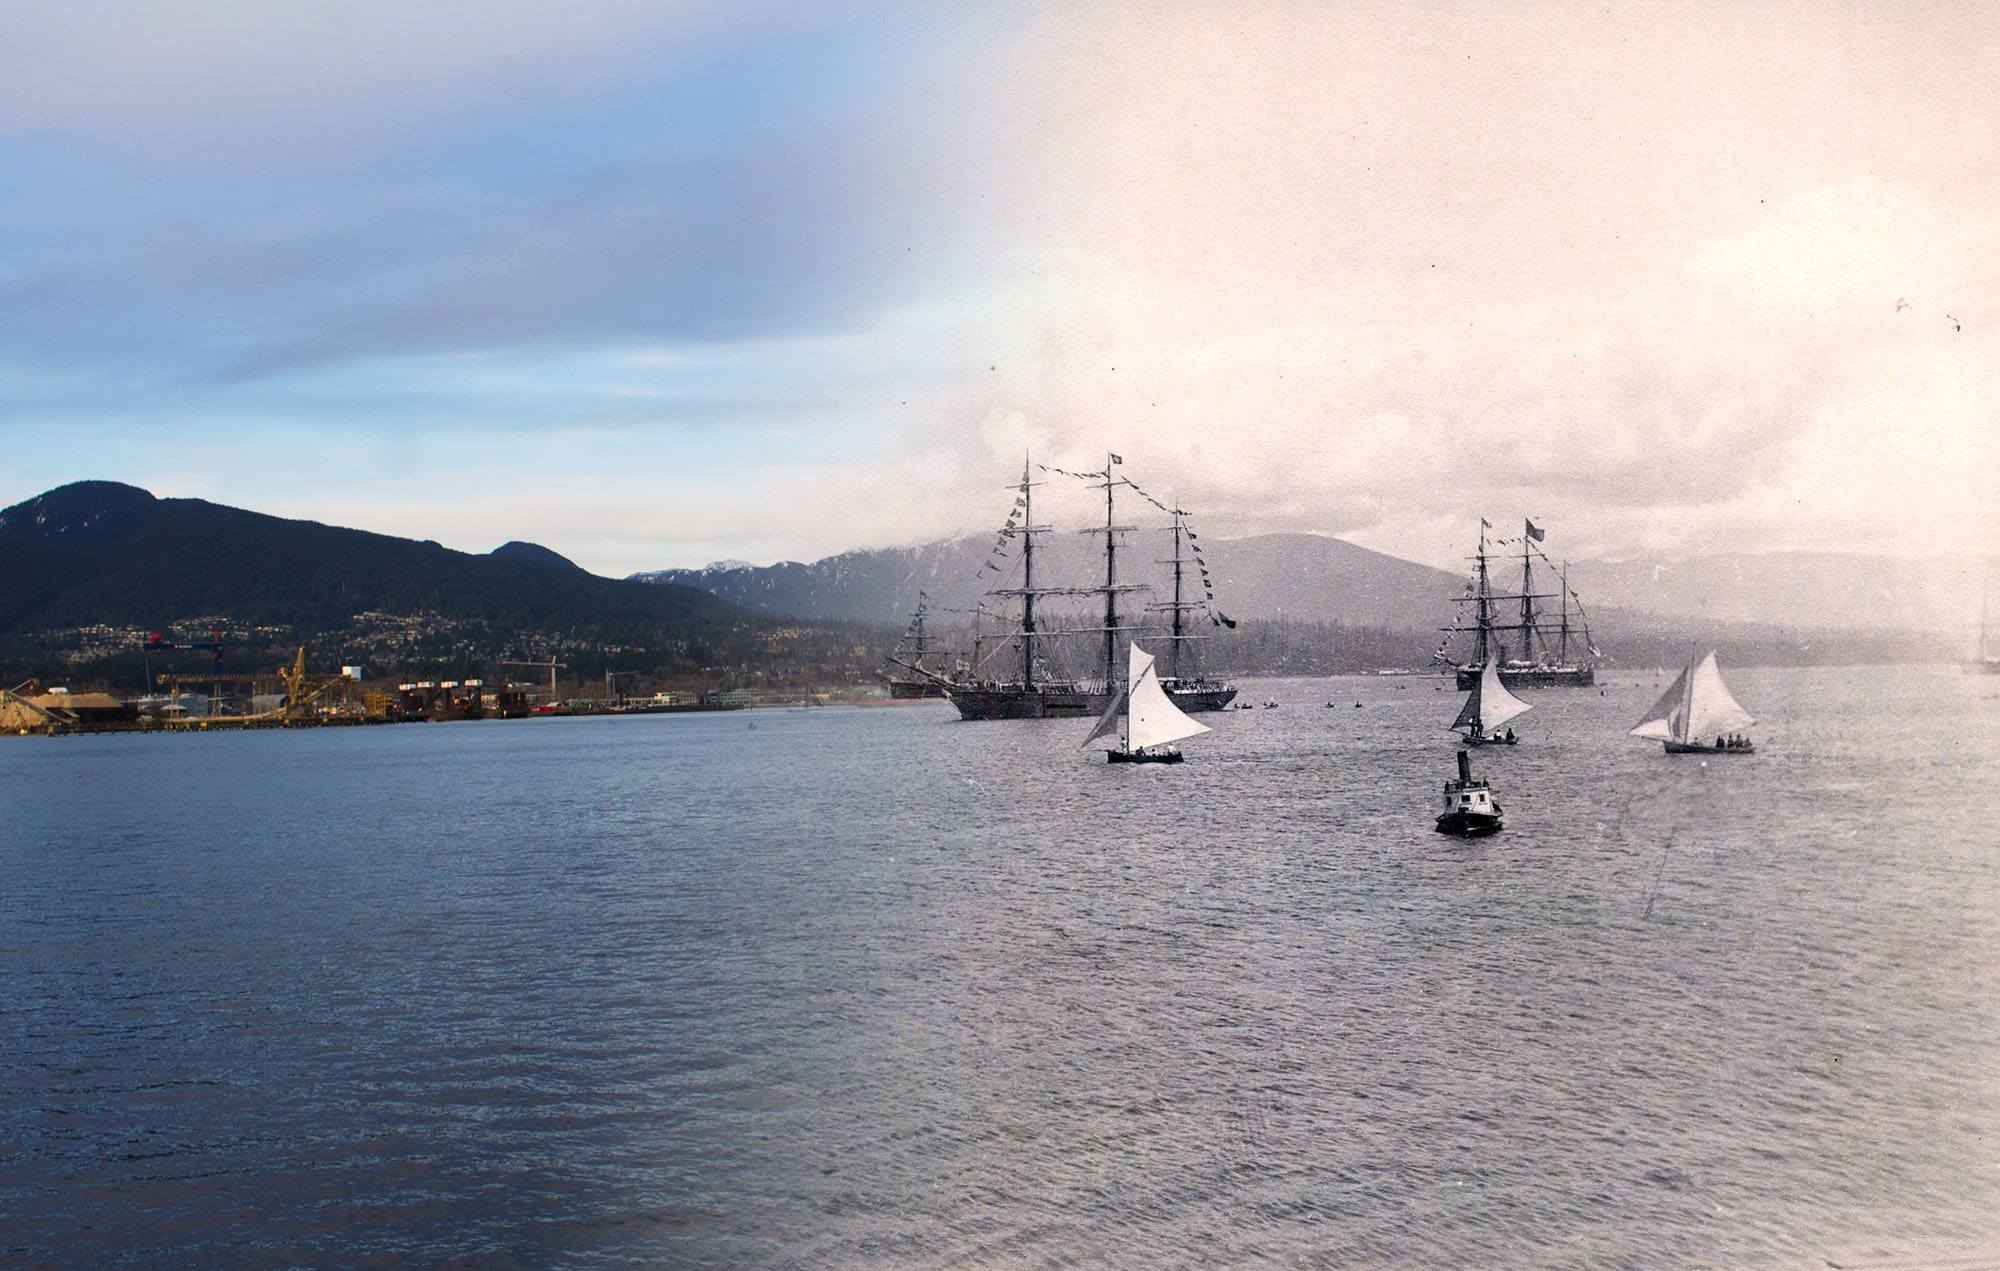 Ships in Vancouver's harbour celebrating Dominion Day (Canada Day) in 1889 (Vancouver Archives/On This Spot)